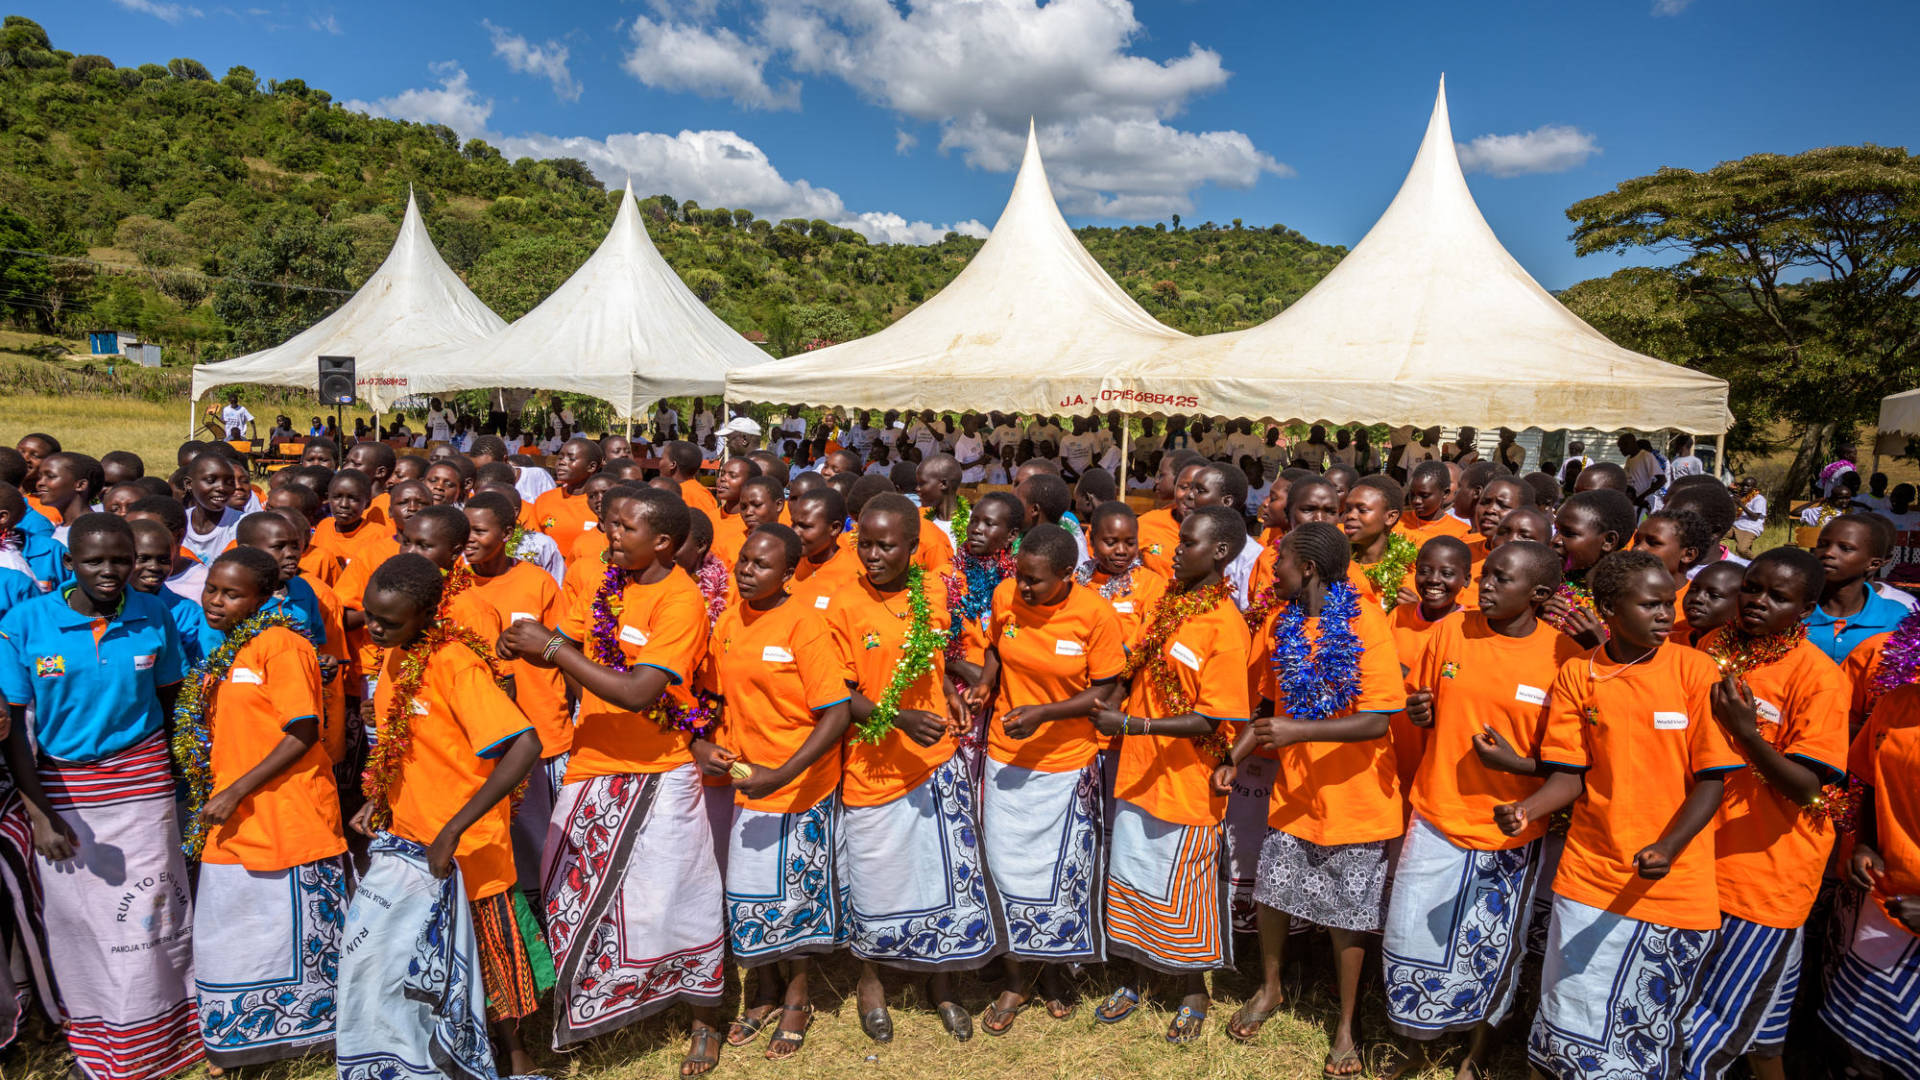 Teens celebrate graduation from a World Vision alternative rite of passage in West Pokot County, Kenya. Five hundred boys and girls took part in training to prevent female genital mutilation (FGM).